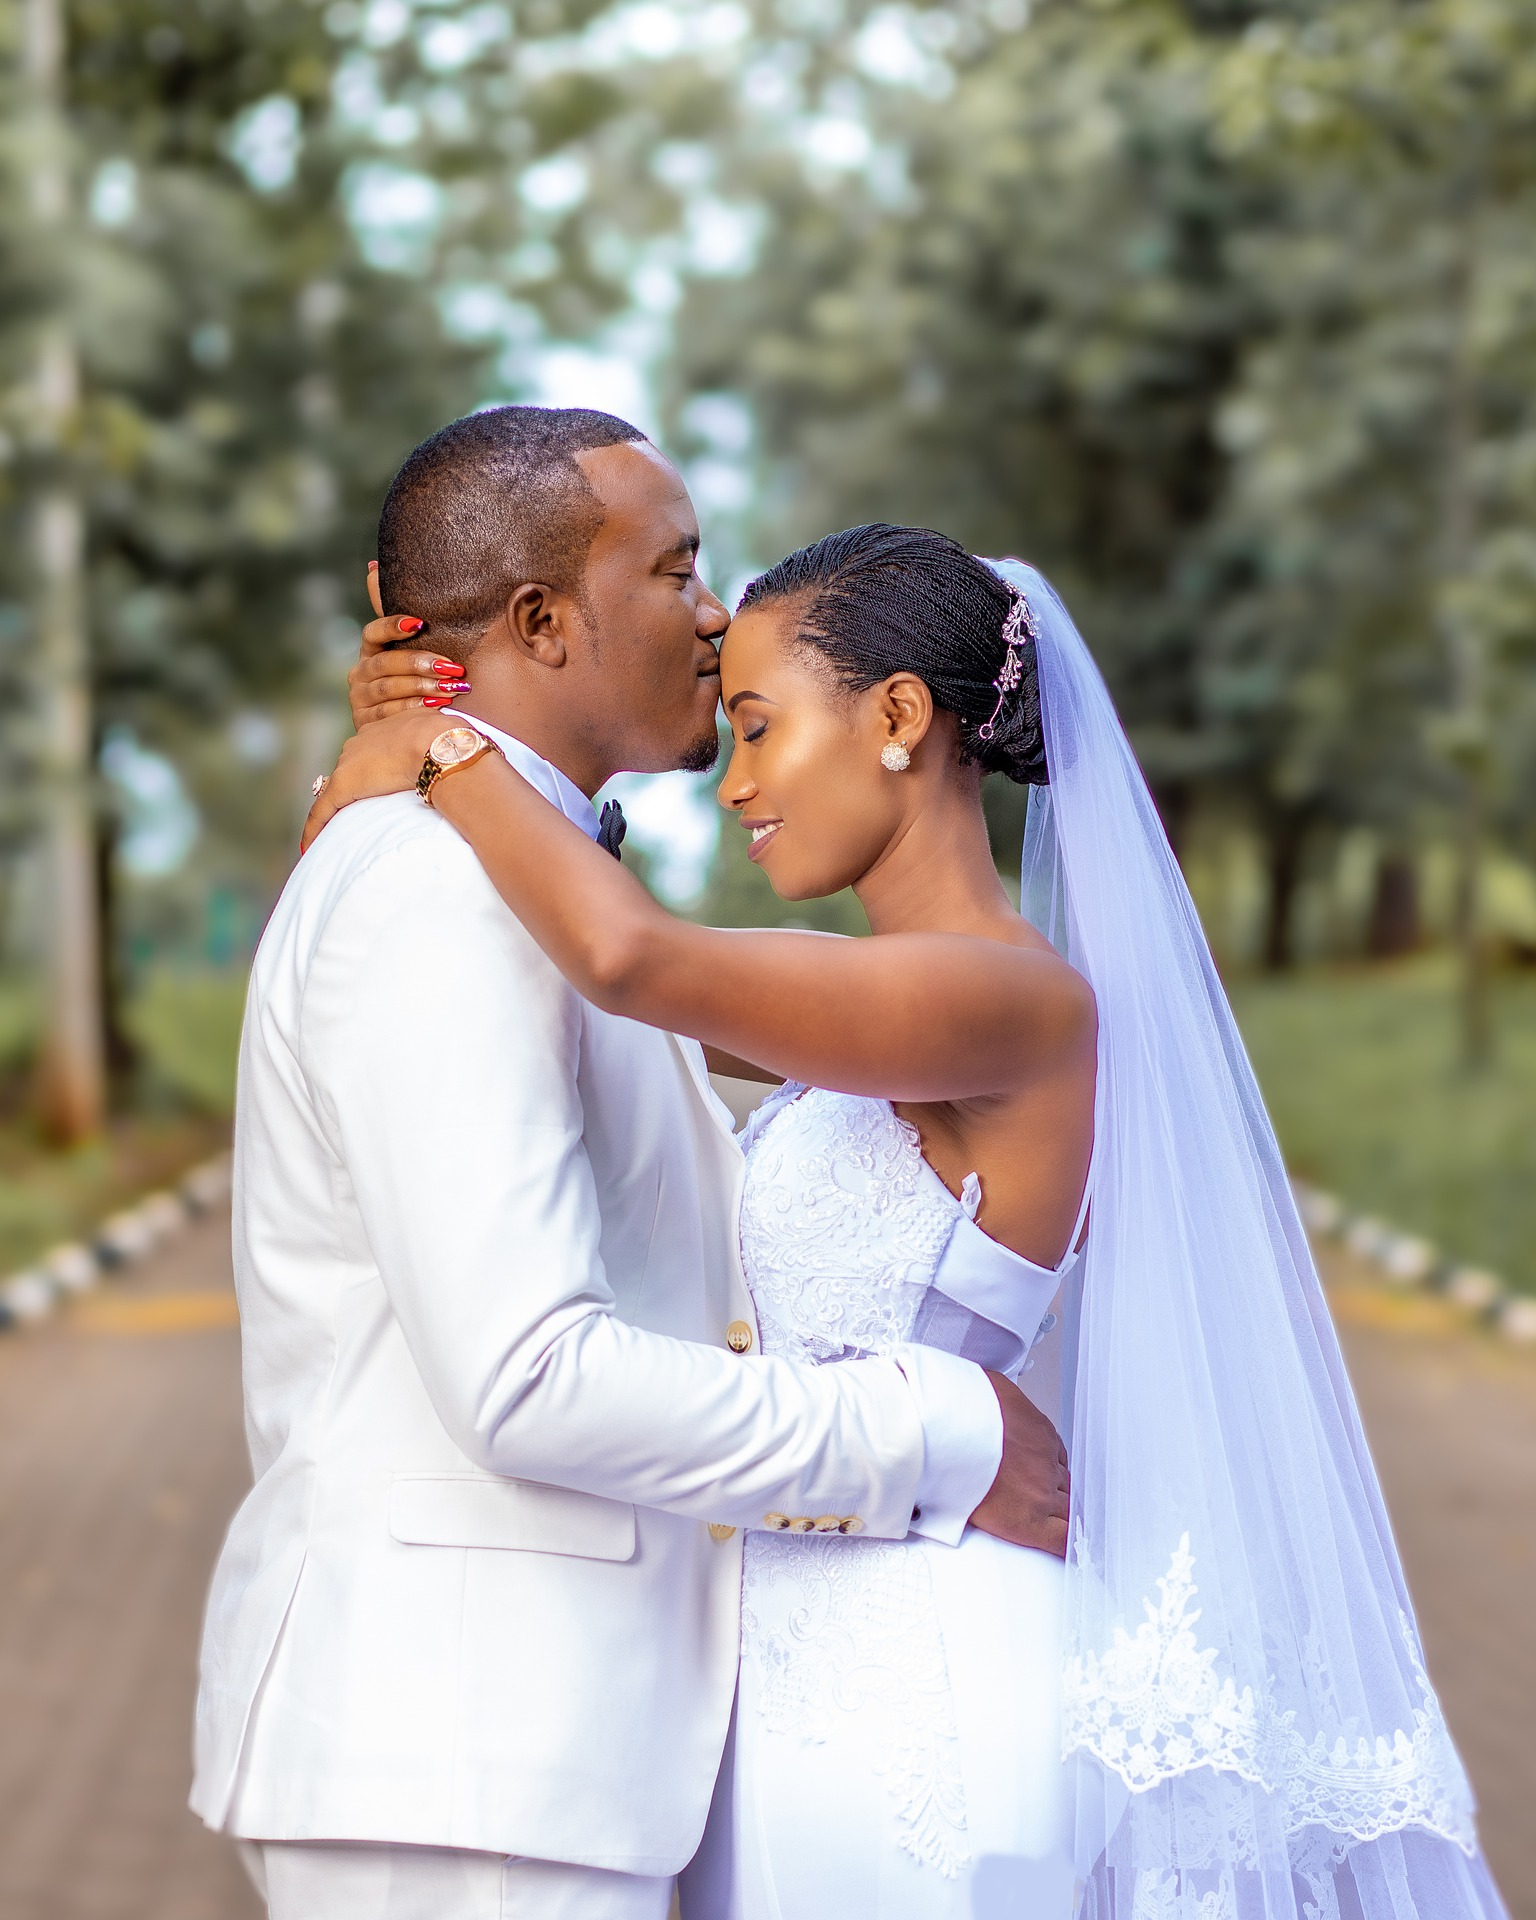 Men Stop Saying You Married Her, Read and Learn Who Marries Who In Real Sense